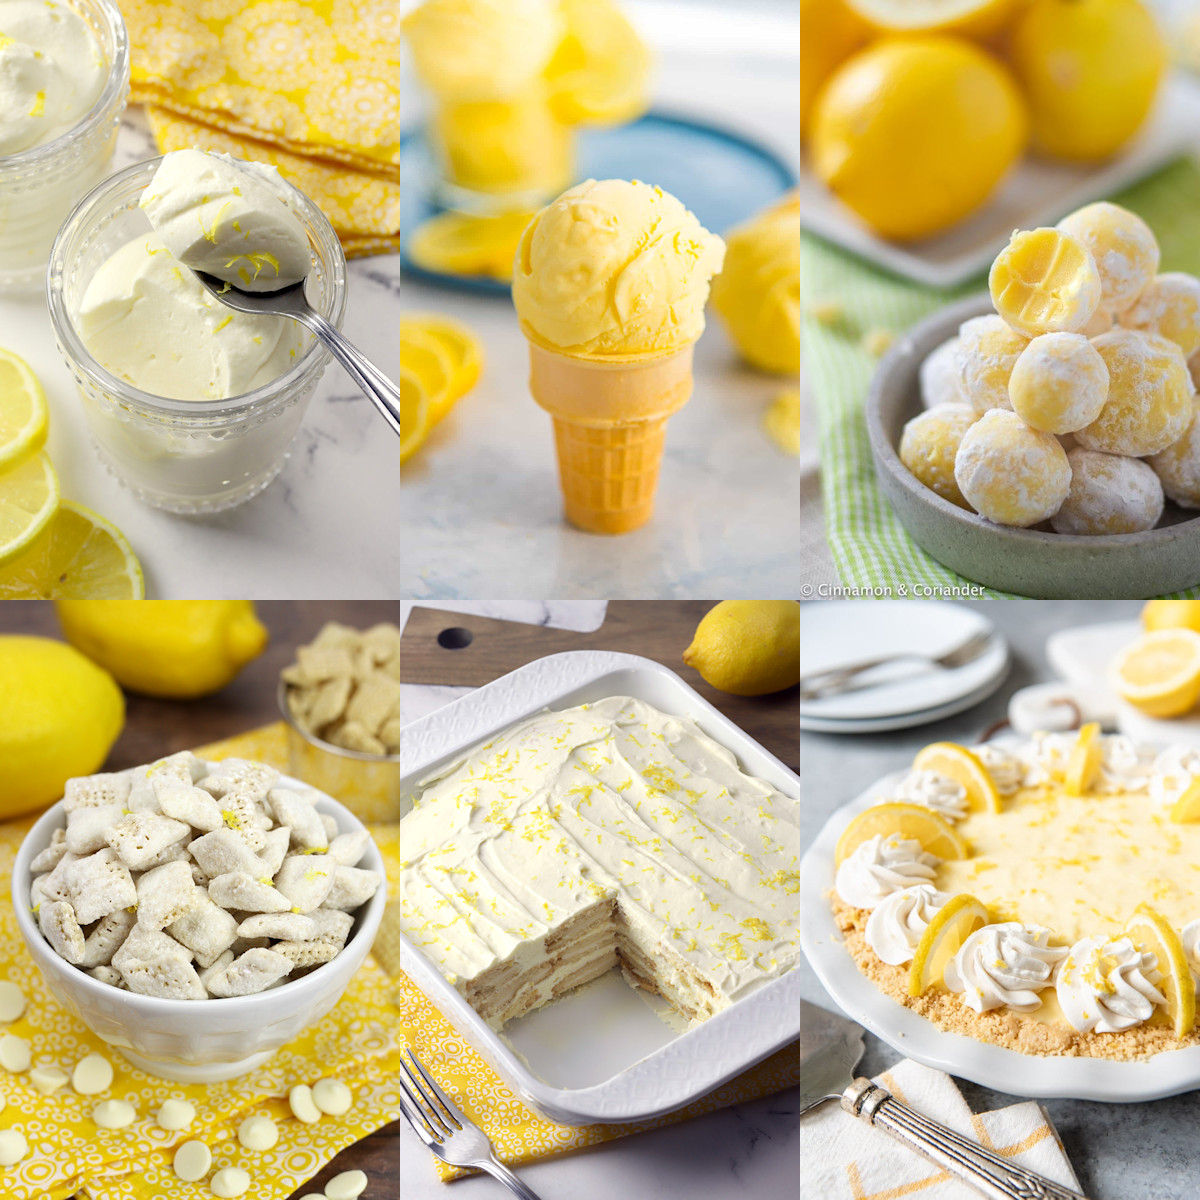 Collage of different types of no-bake lemon desserts.